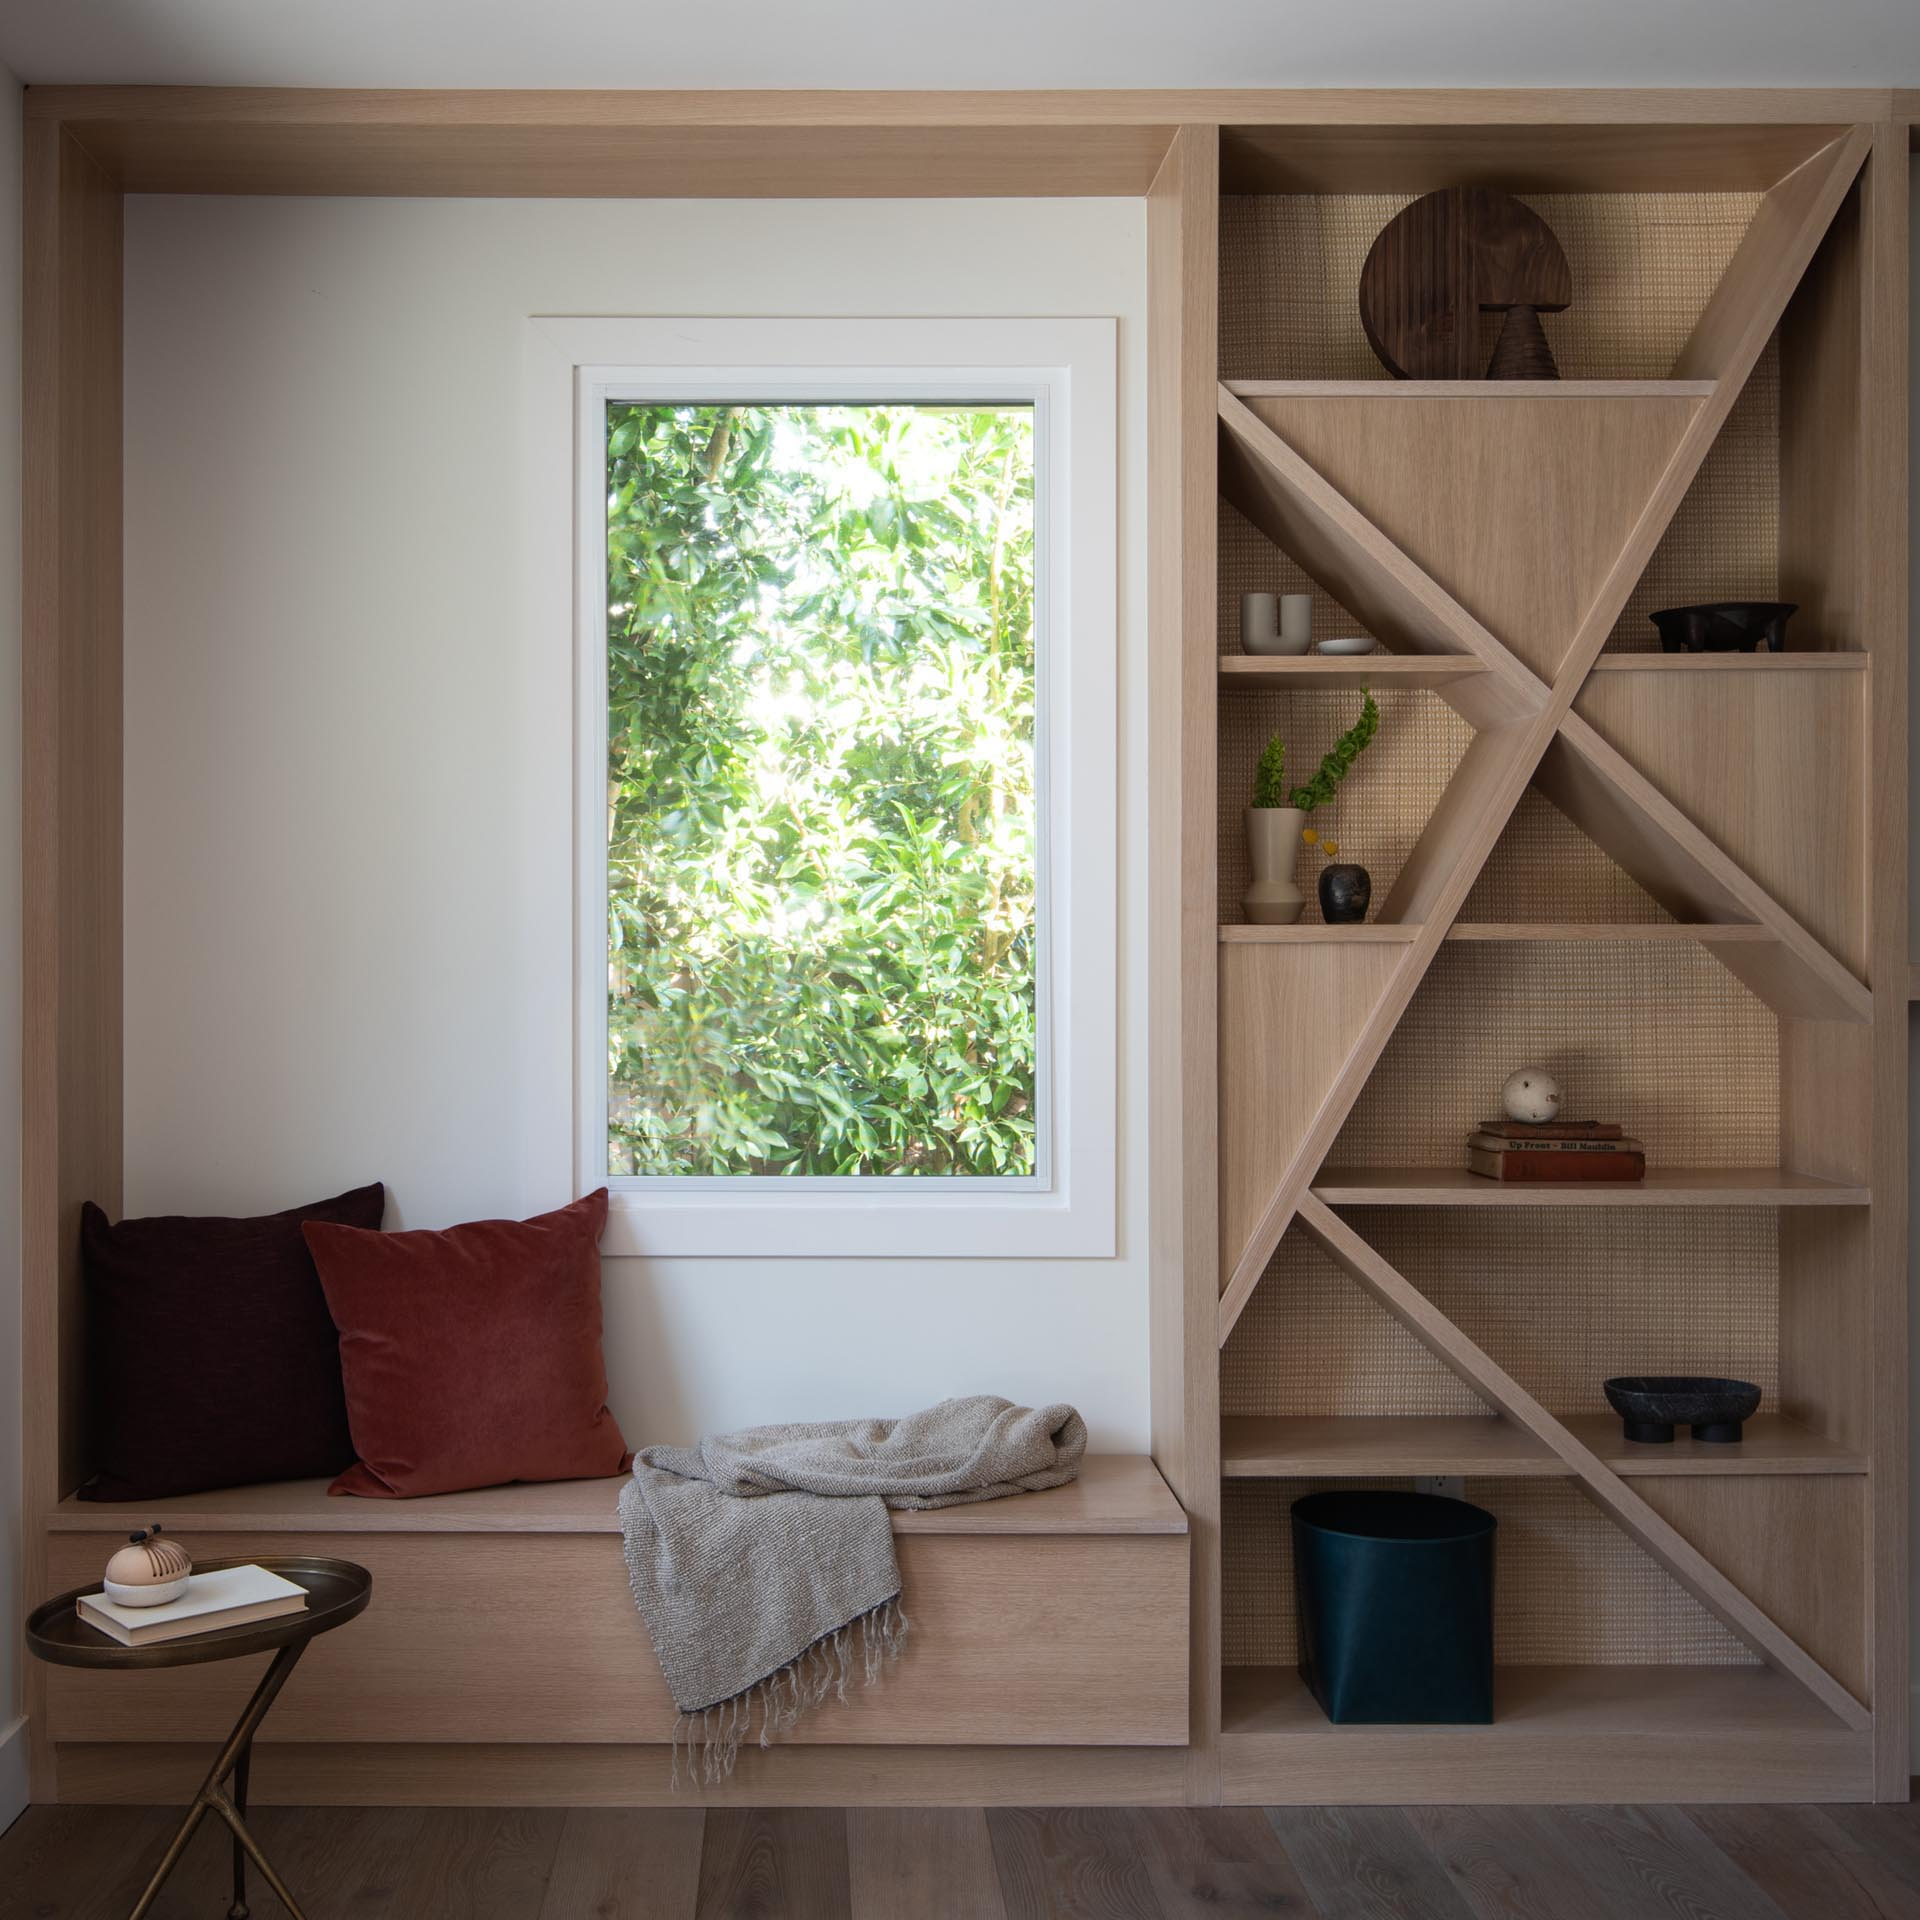 A modern shelving unit with a natural cane backing has been installed next to a window seat.